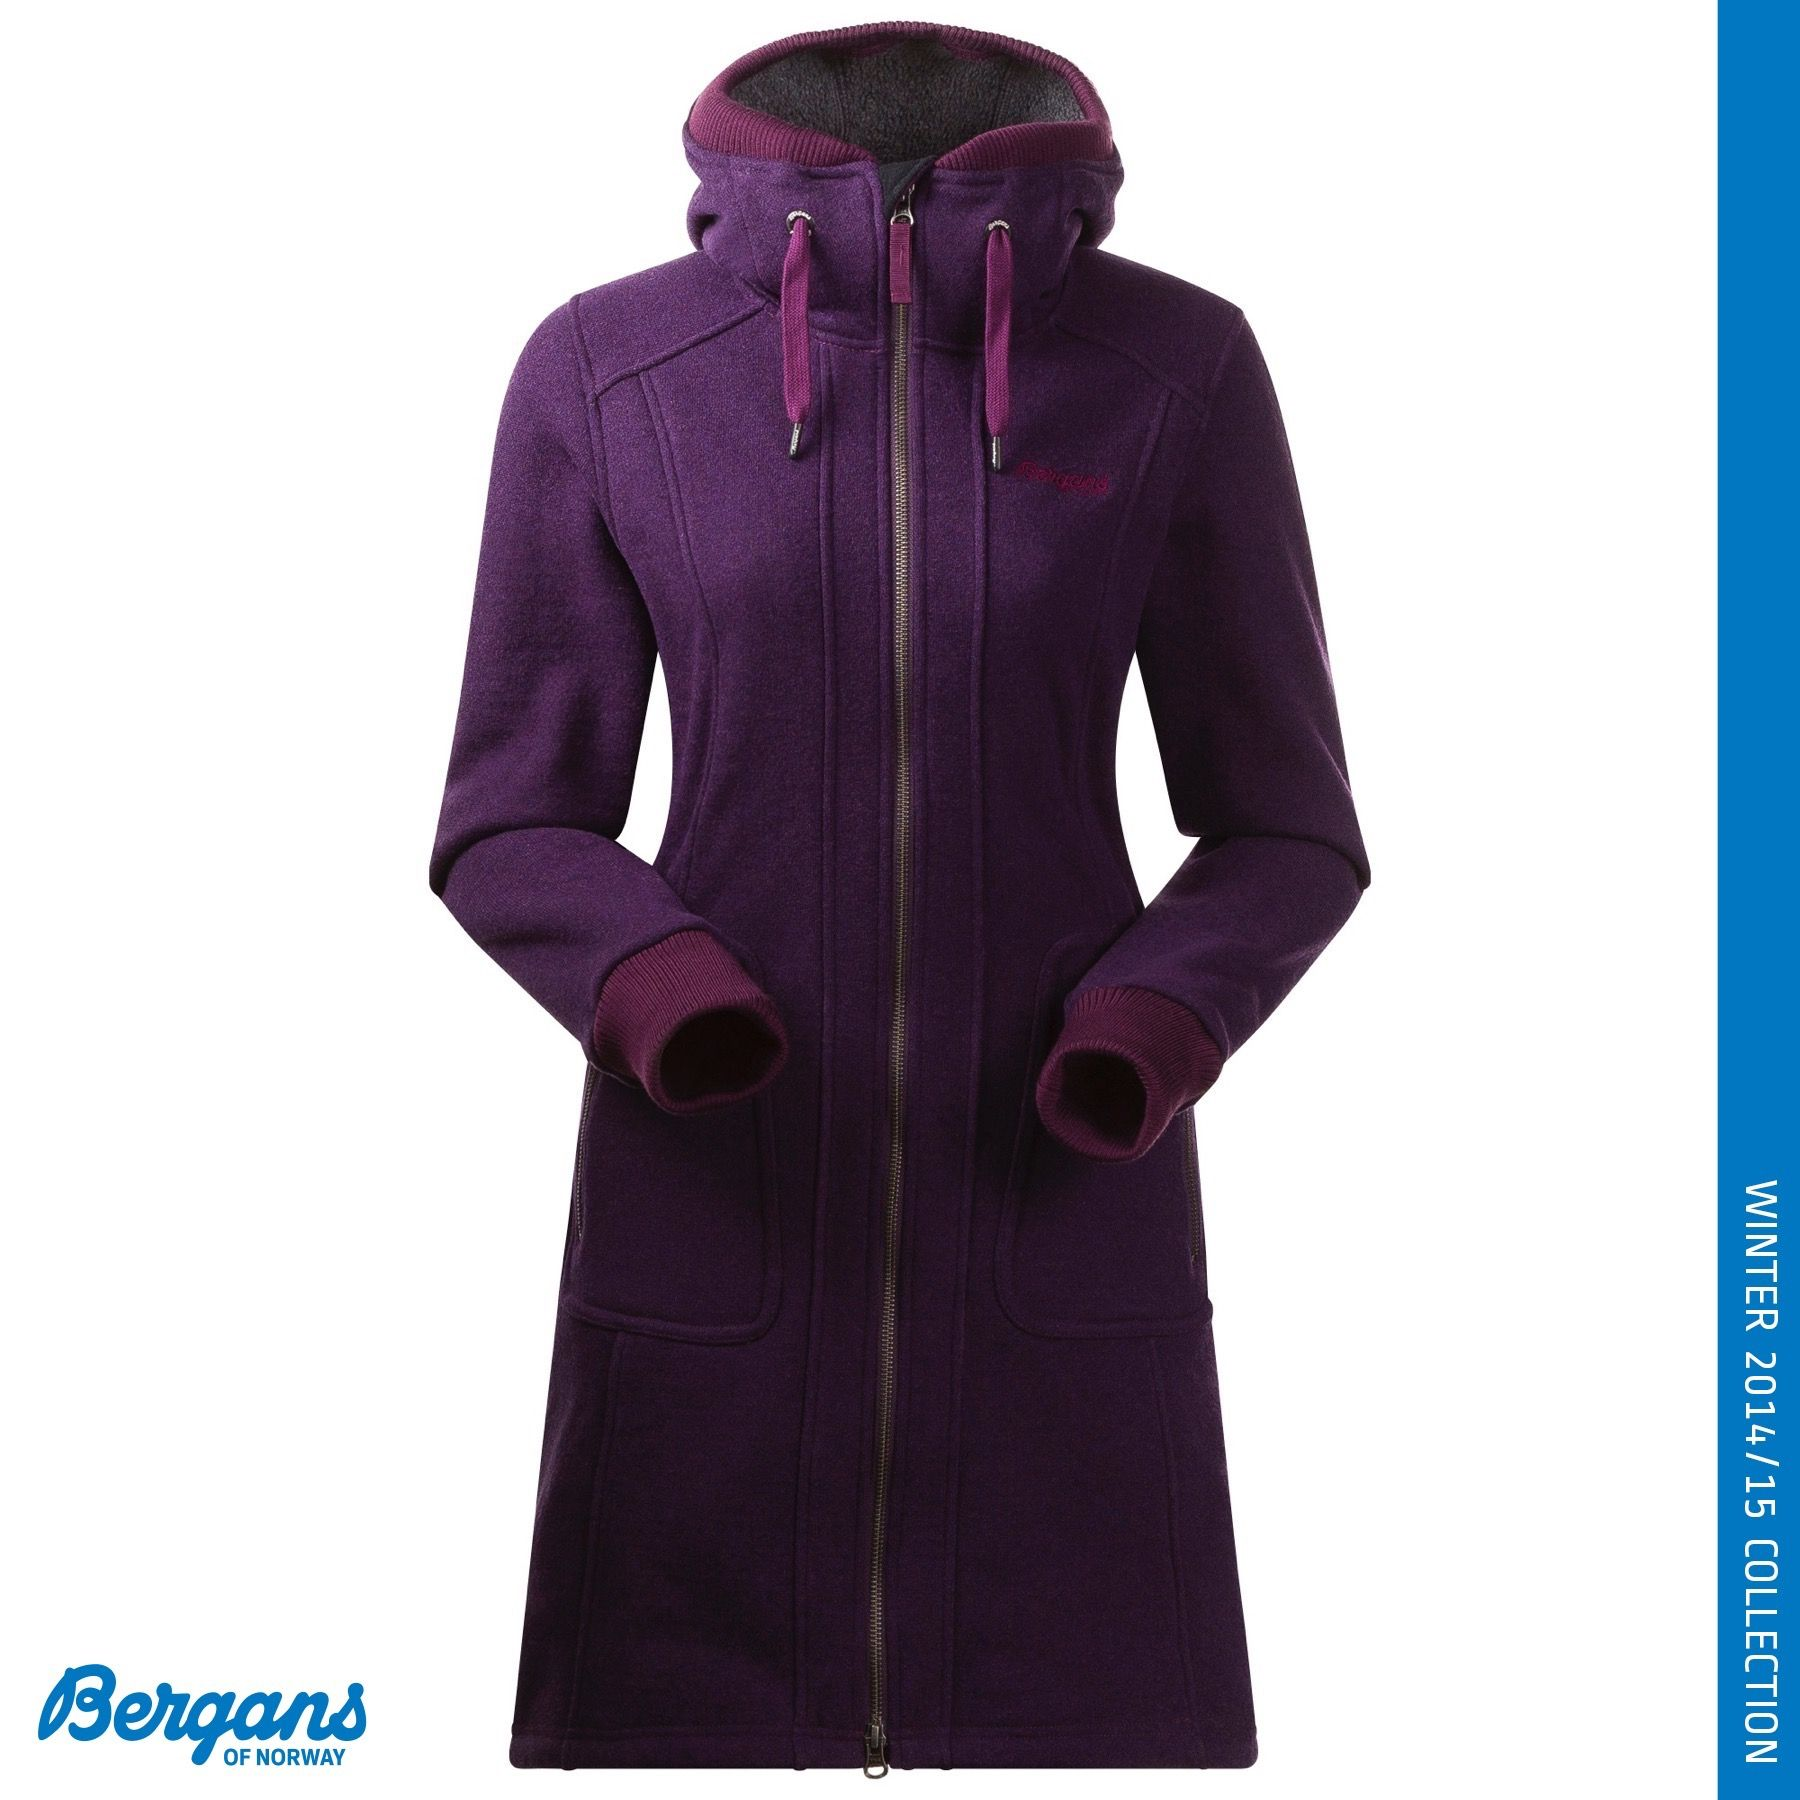 The Myrull Lady Coat by Bergans of Norway is a longer length